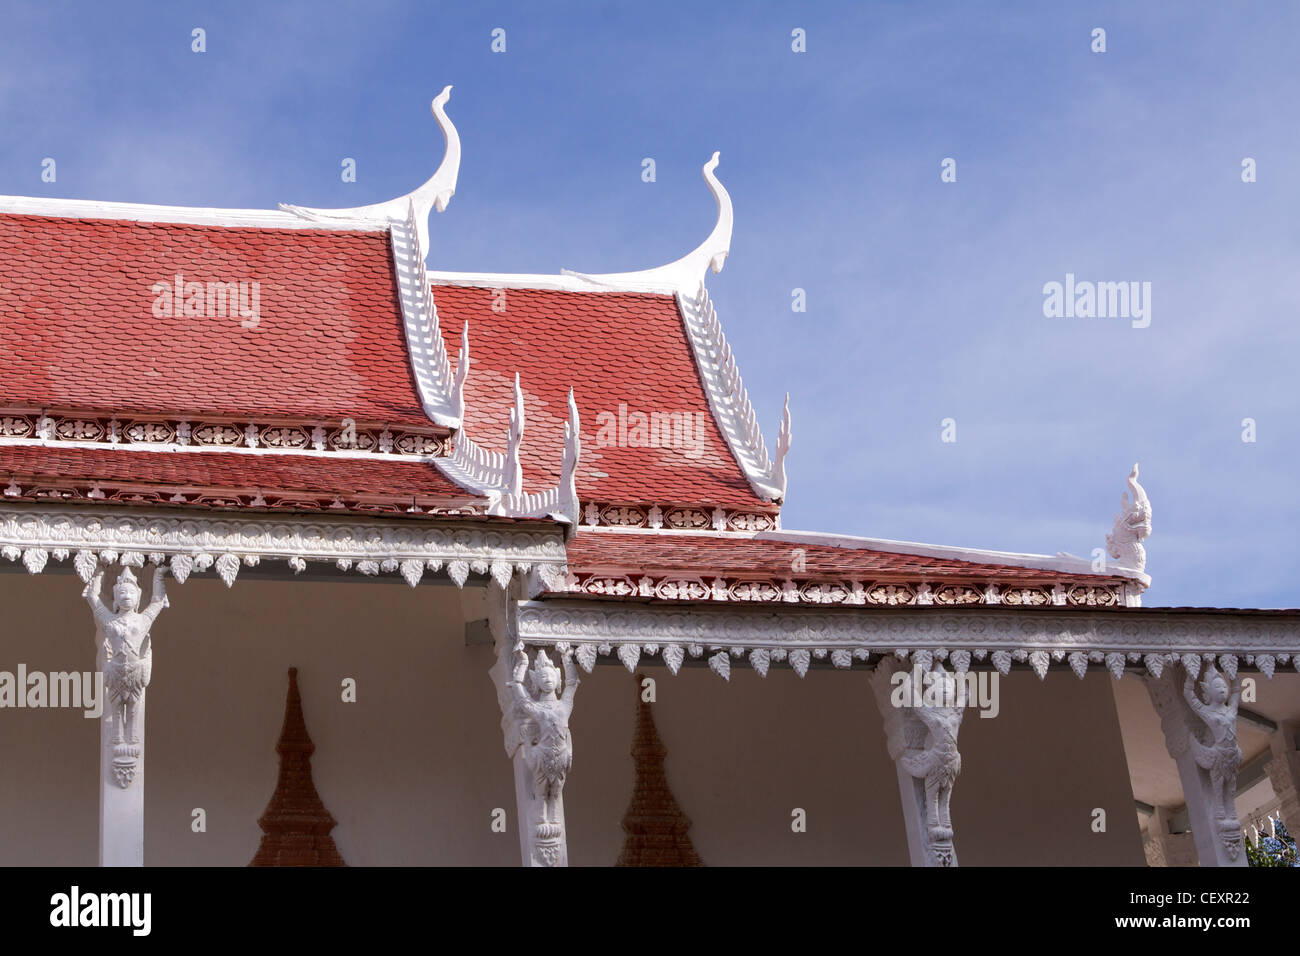 Wat Kampong Tralach 'Vihara' desecrated by the Khmer Rouge in the 1970's - Stock Image